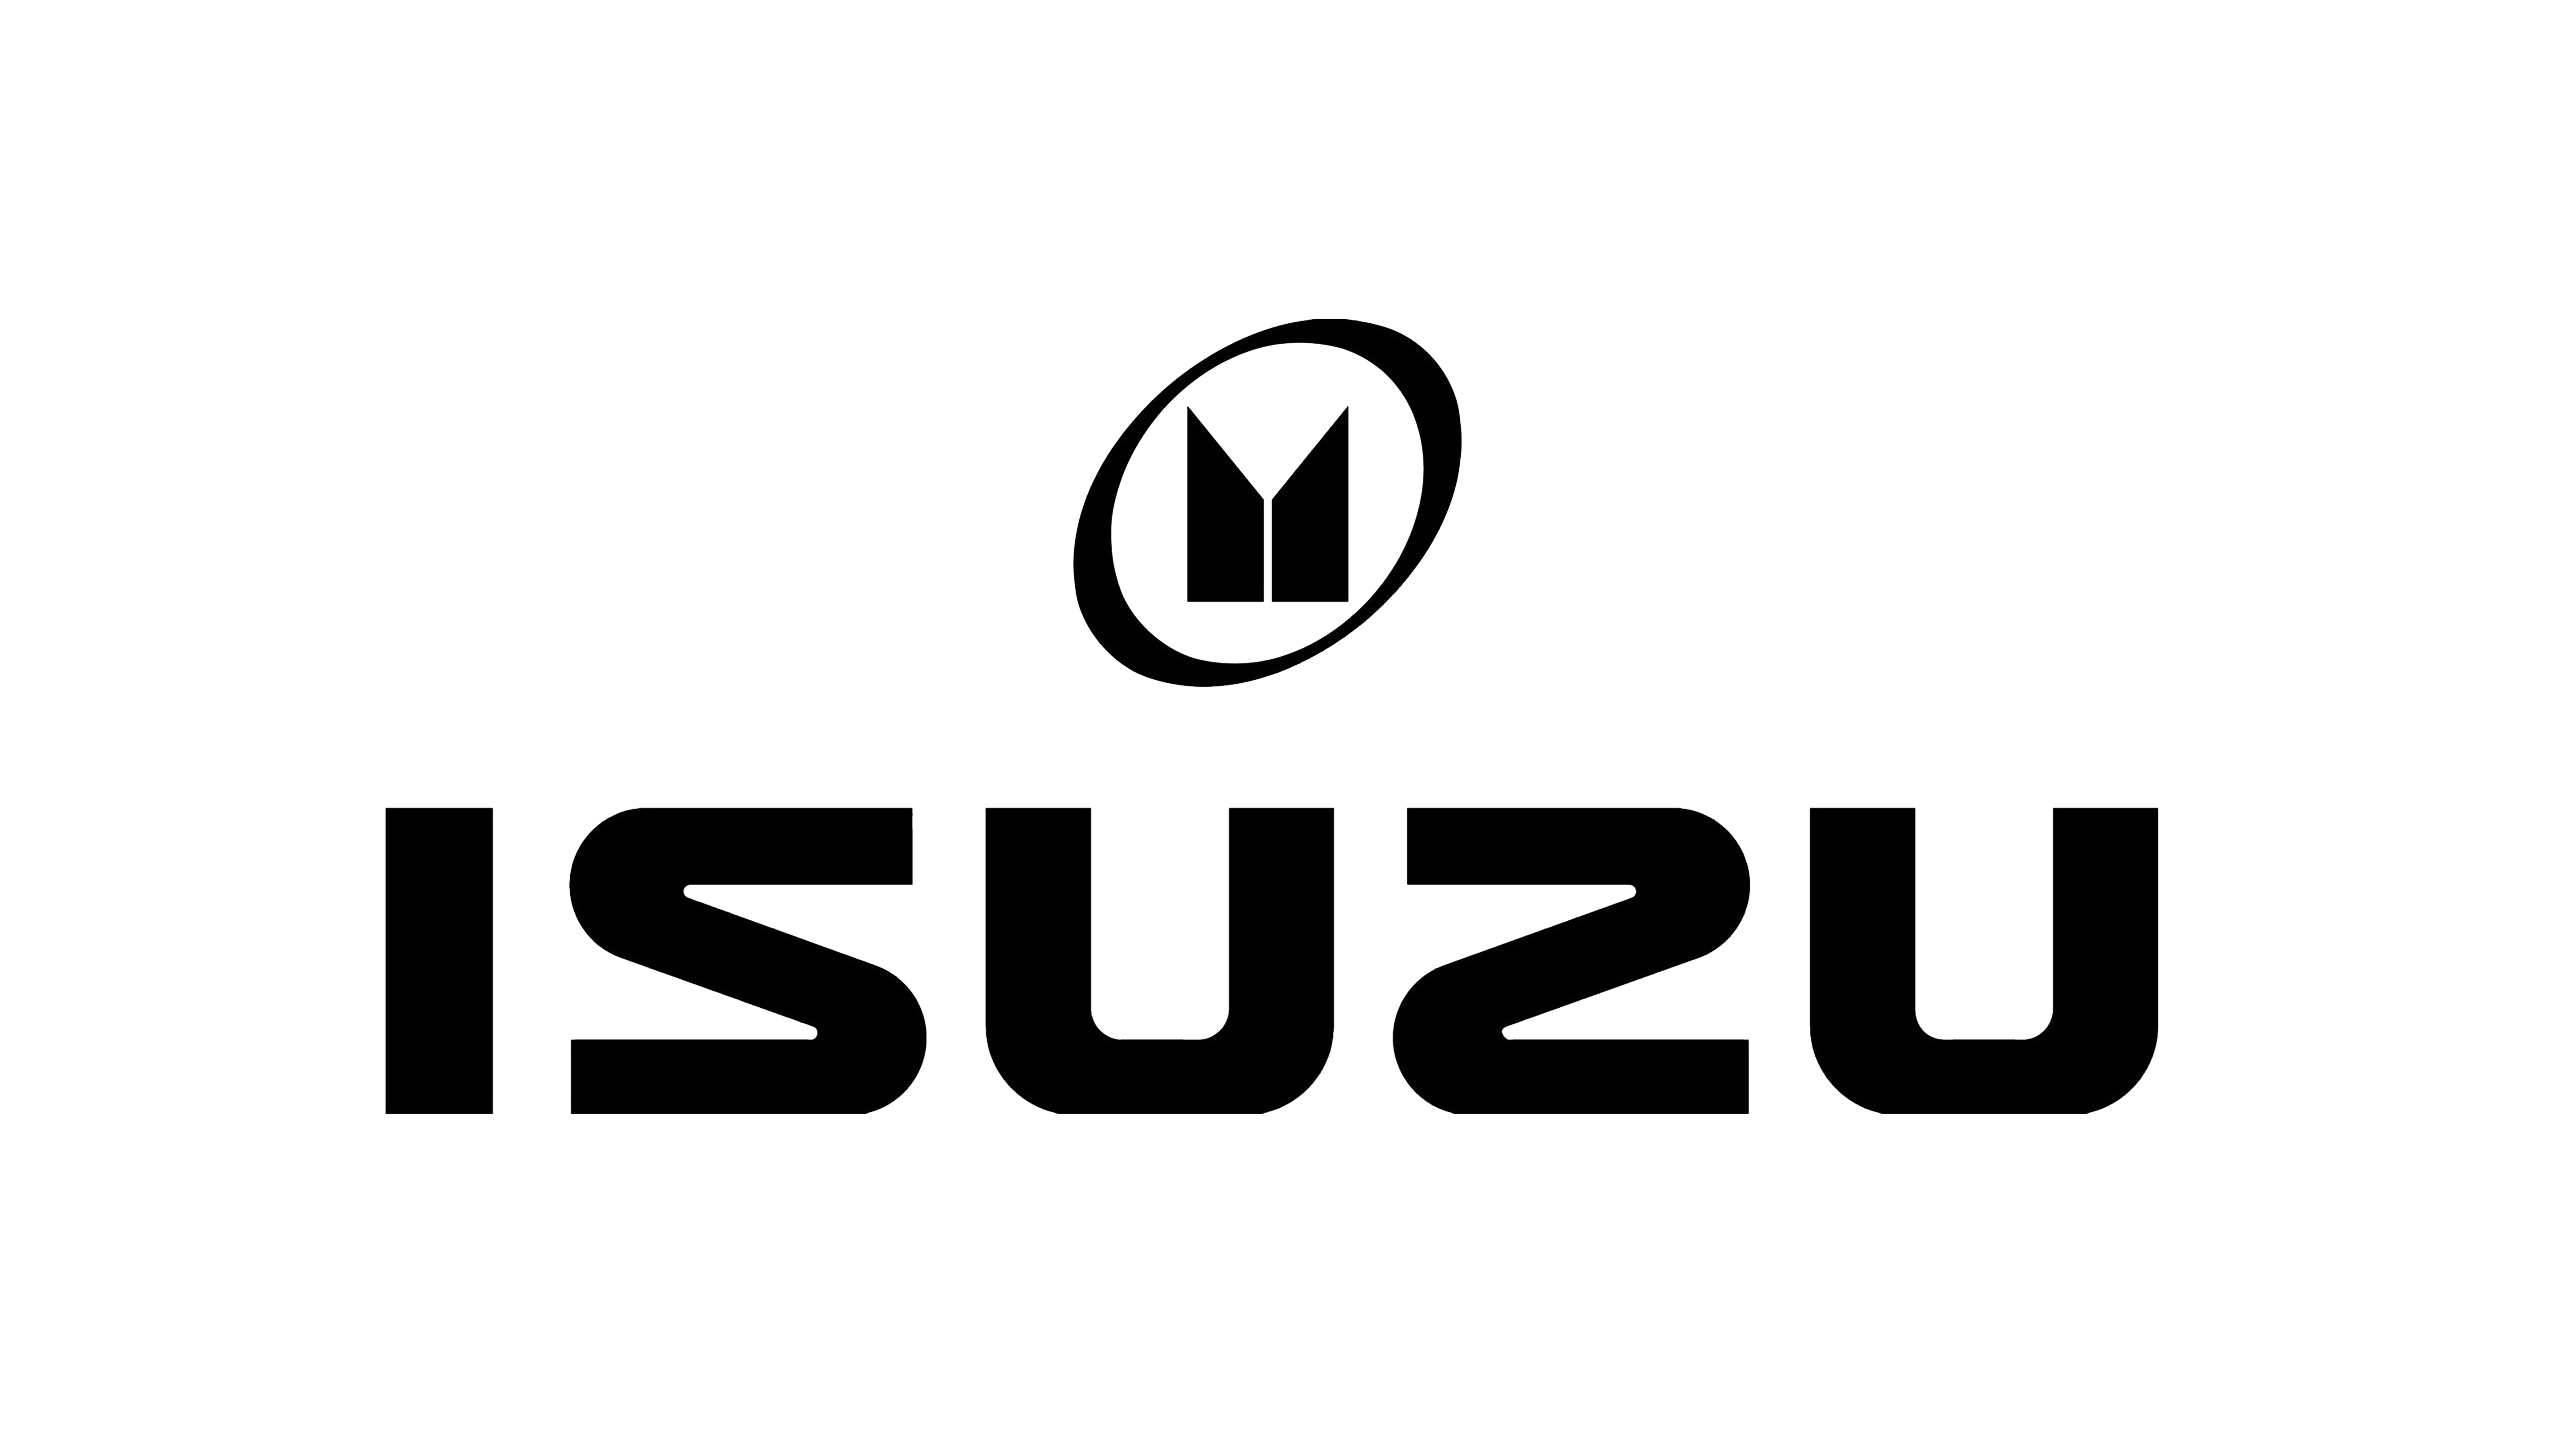 isuzu logo  hd png  meaning  information